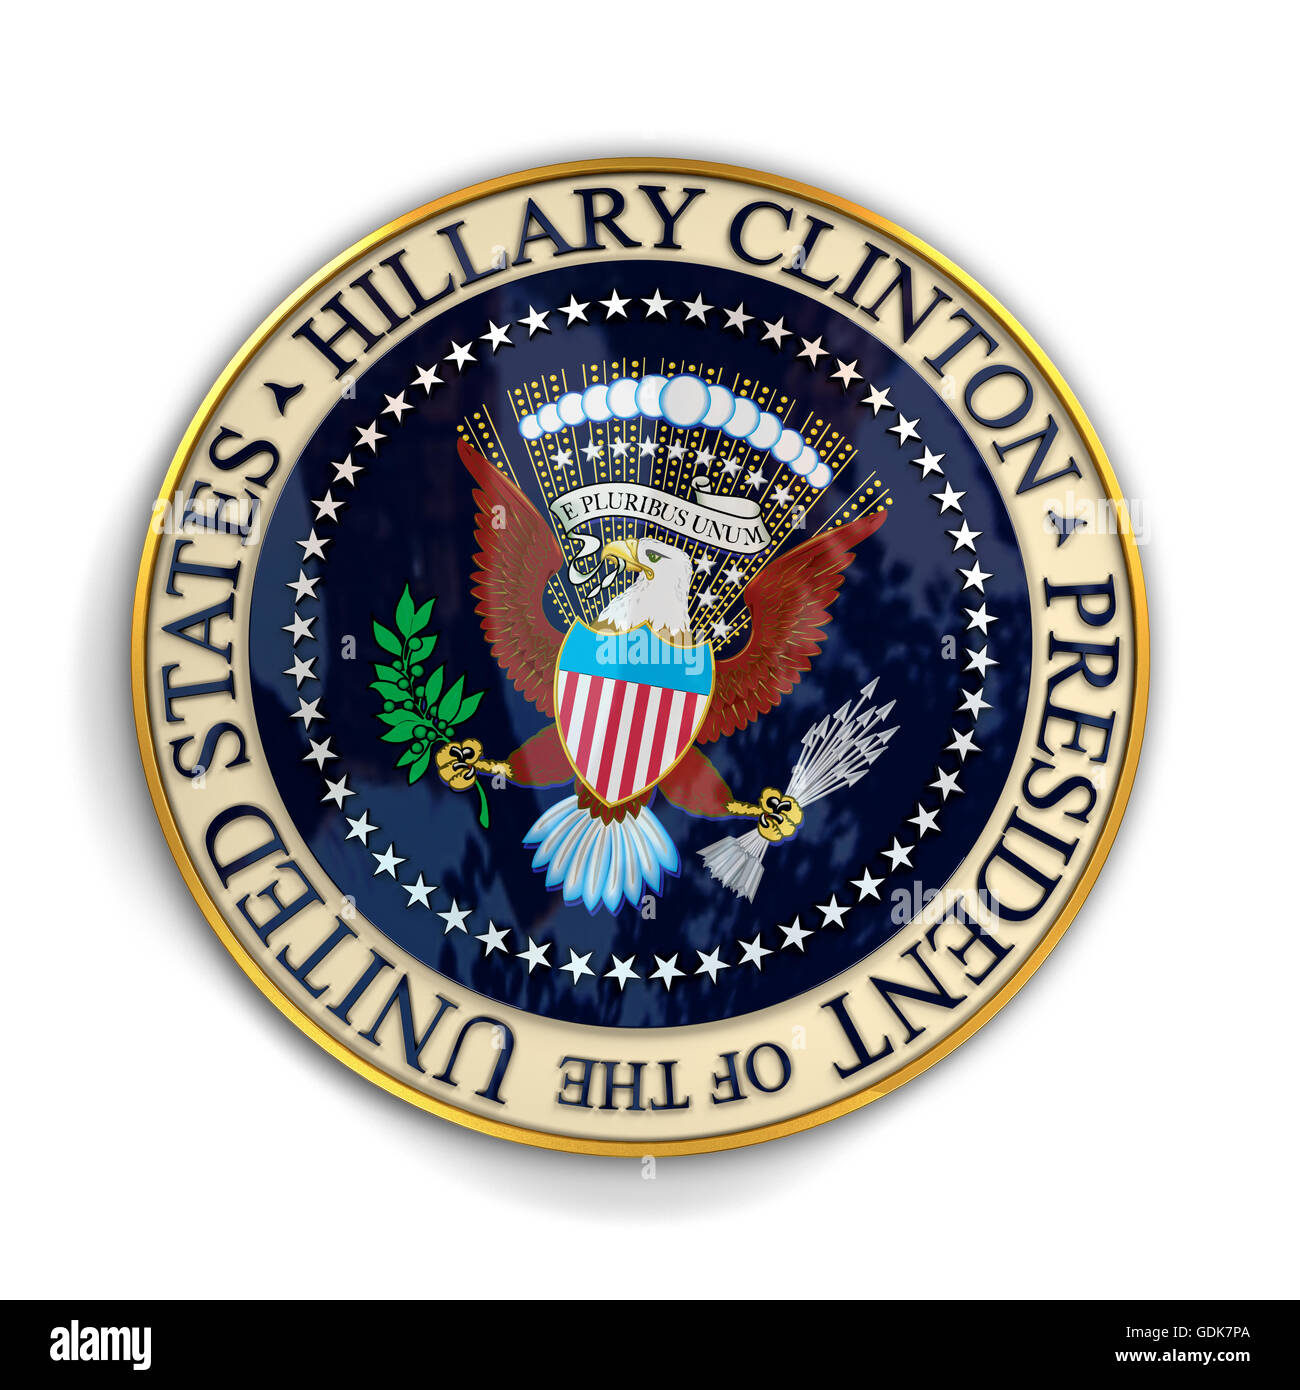 Illustration of presidential seal with Hillary Clinton's name on it. Stock Photo